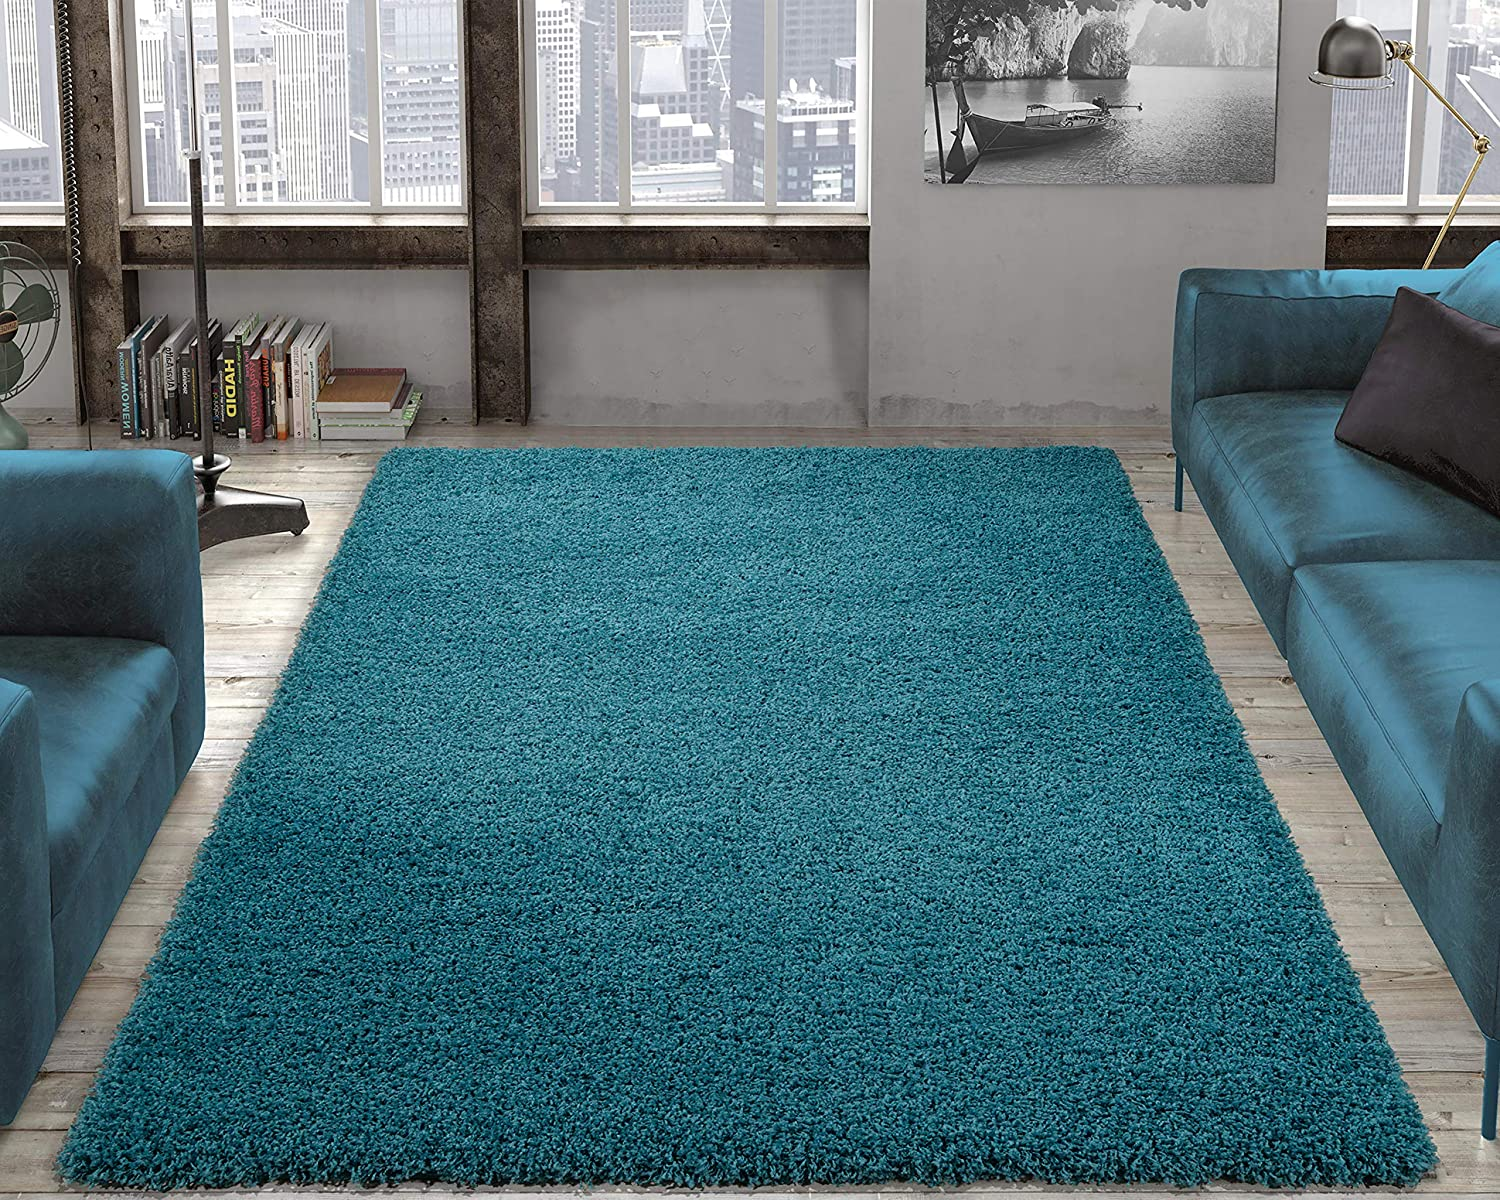 Ottomanson Collection Solid Shag Rug, 7'10